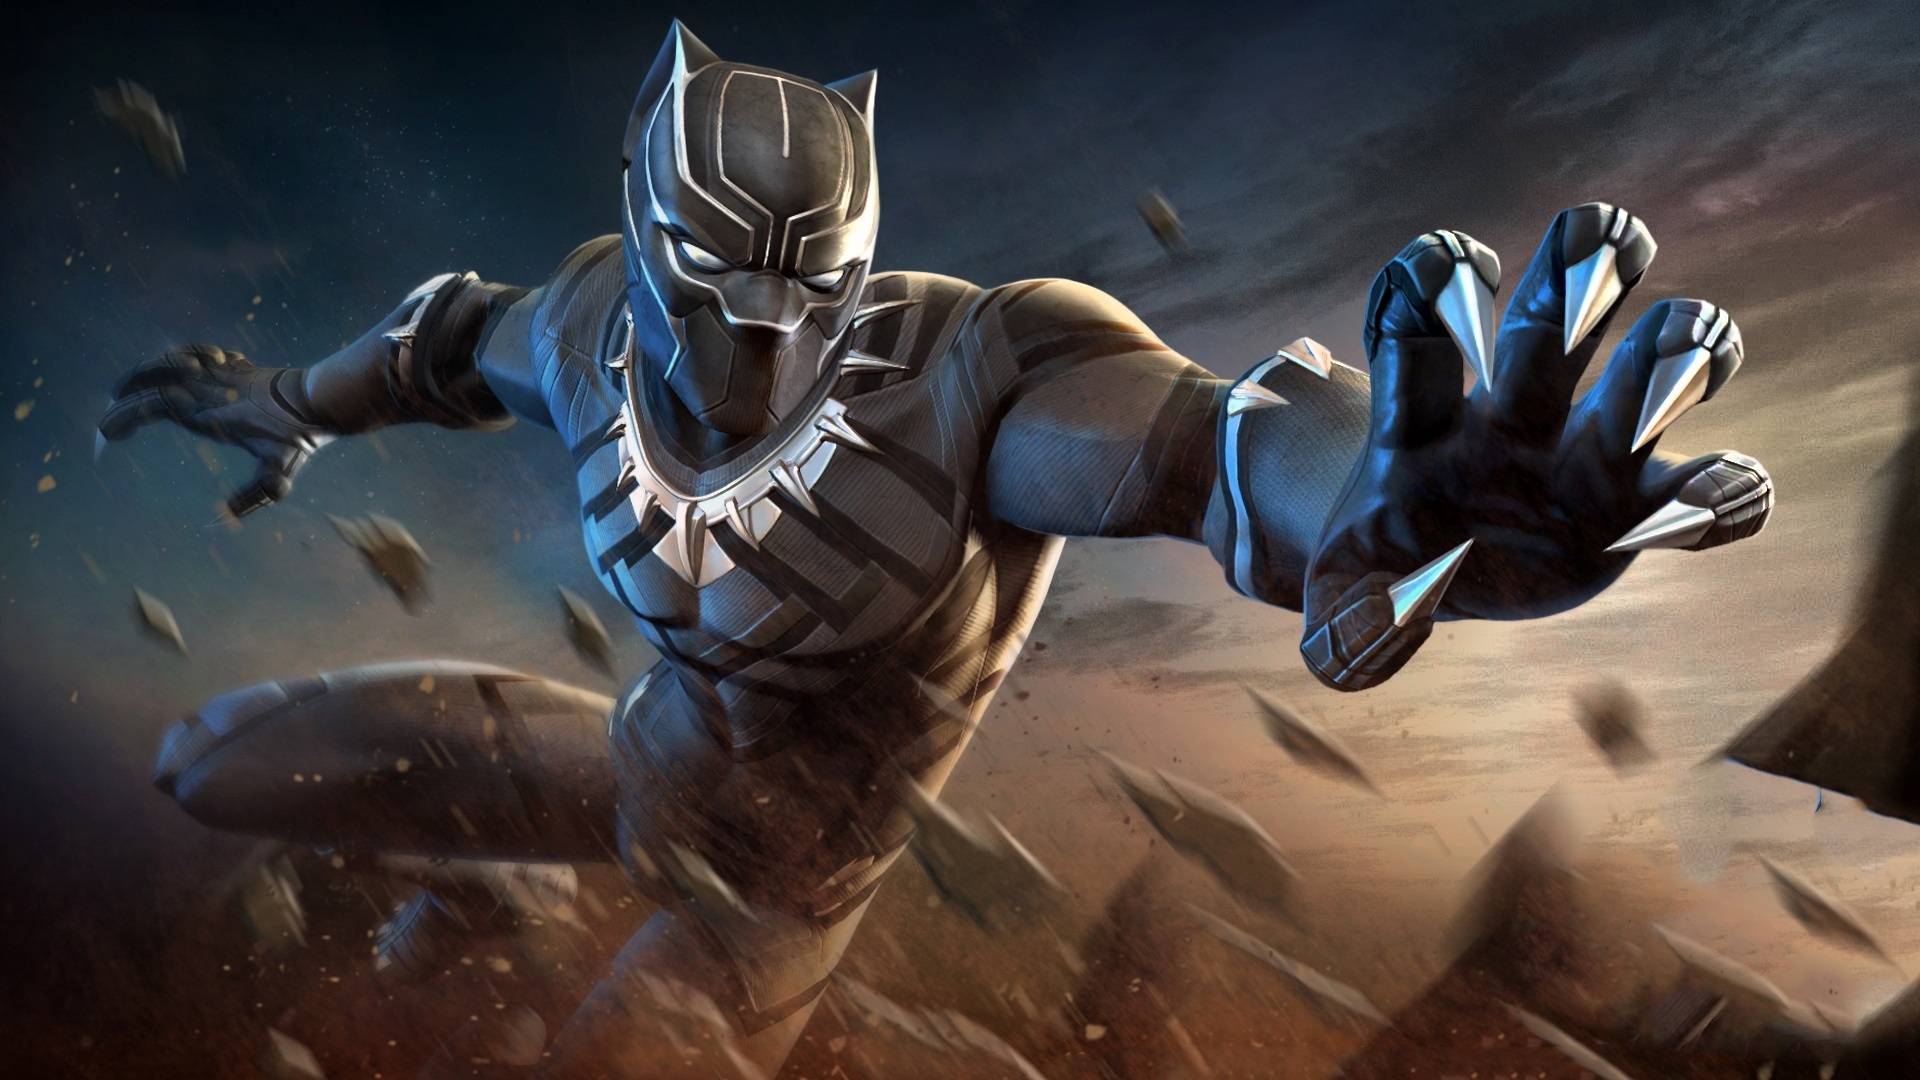 Wallpaper Black Panther Hands Superhero 1920x1080 Full HD Picture